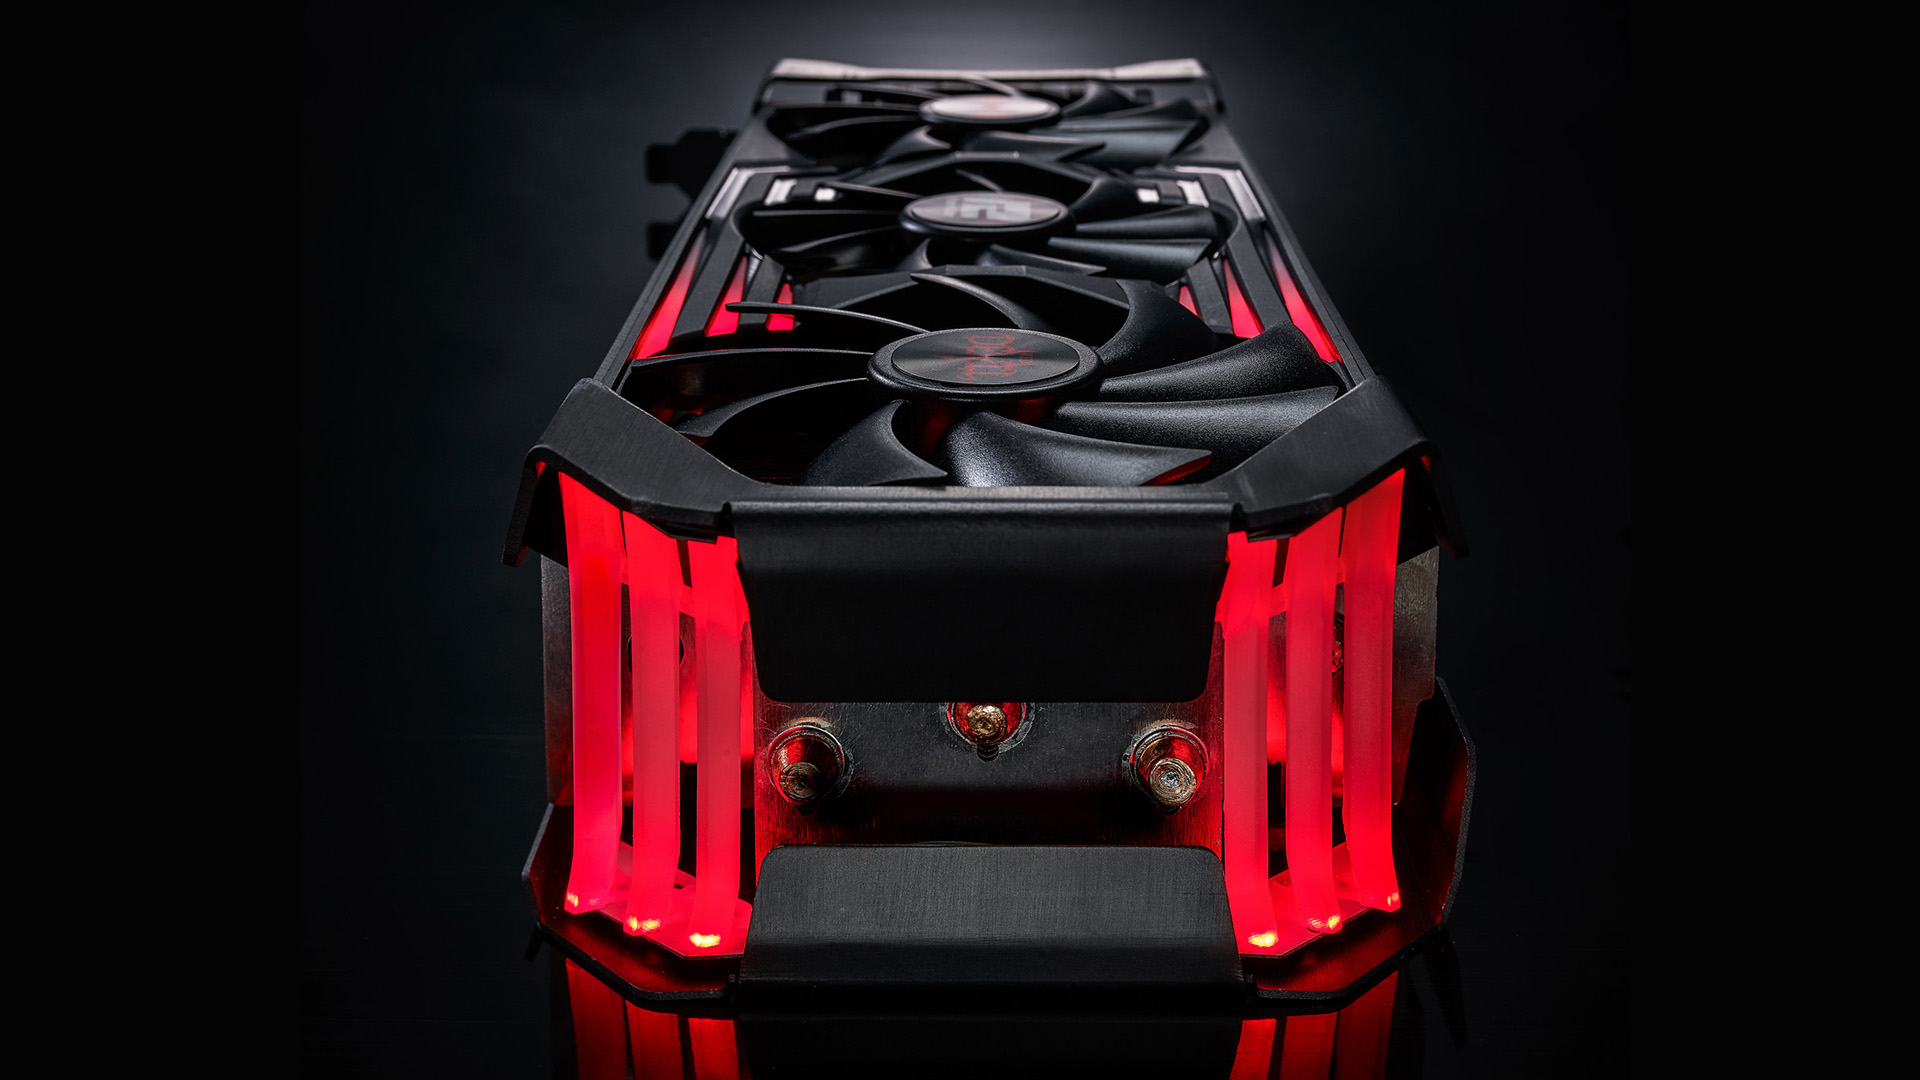 Powercolor AMD Radeon RX 6800 XT Red Devil hits 2.8GHz on air...